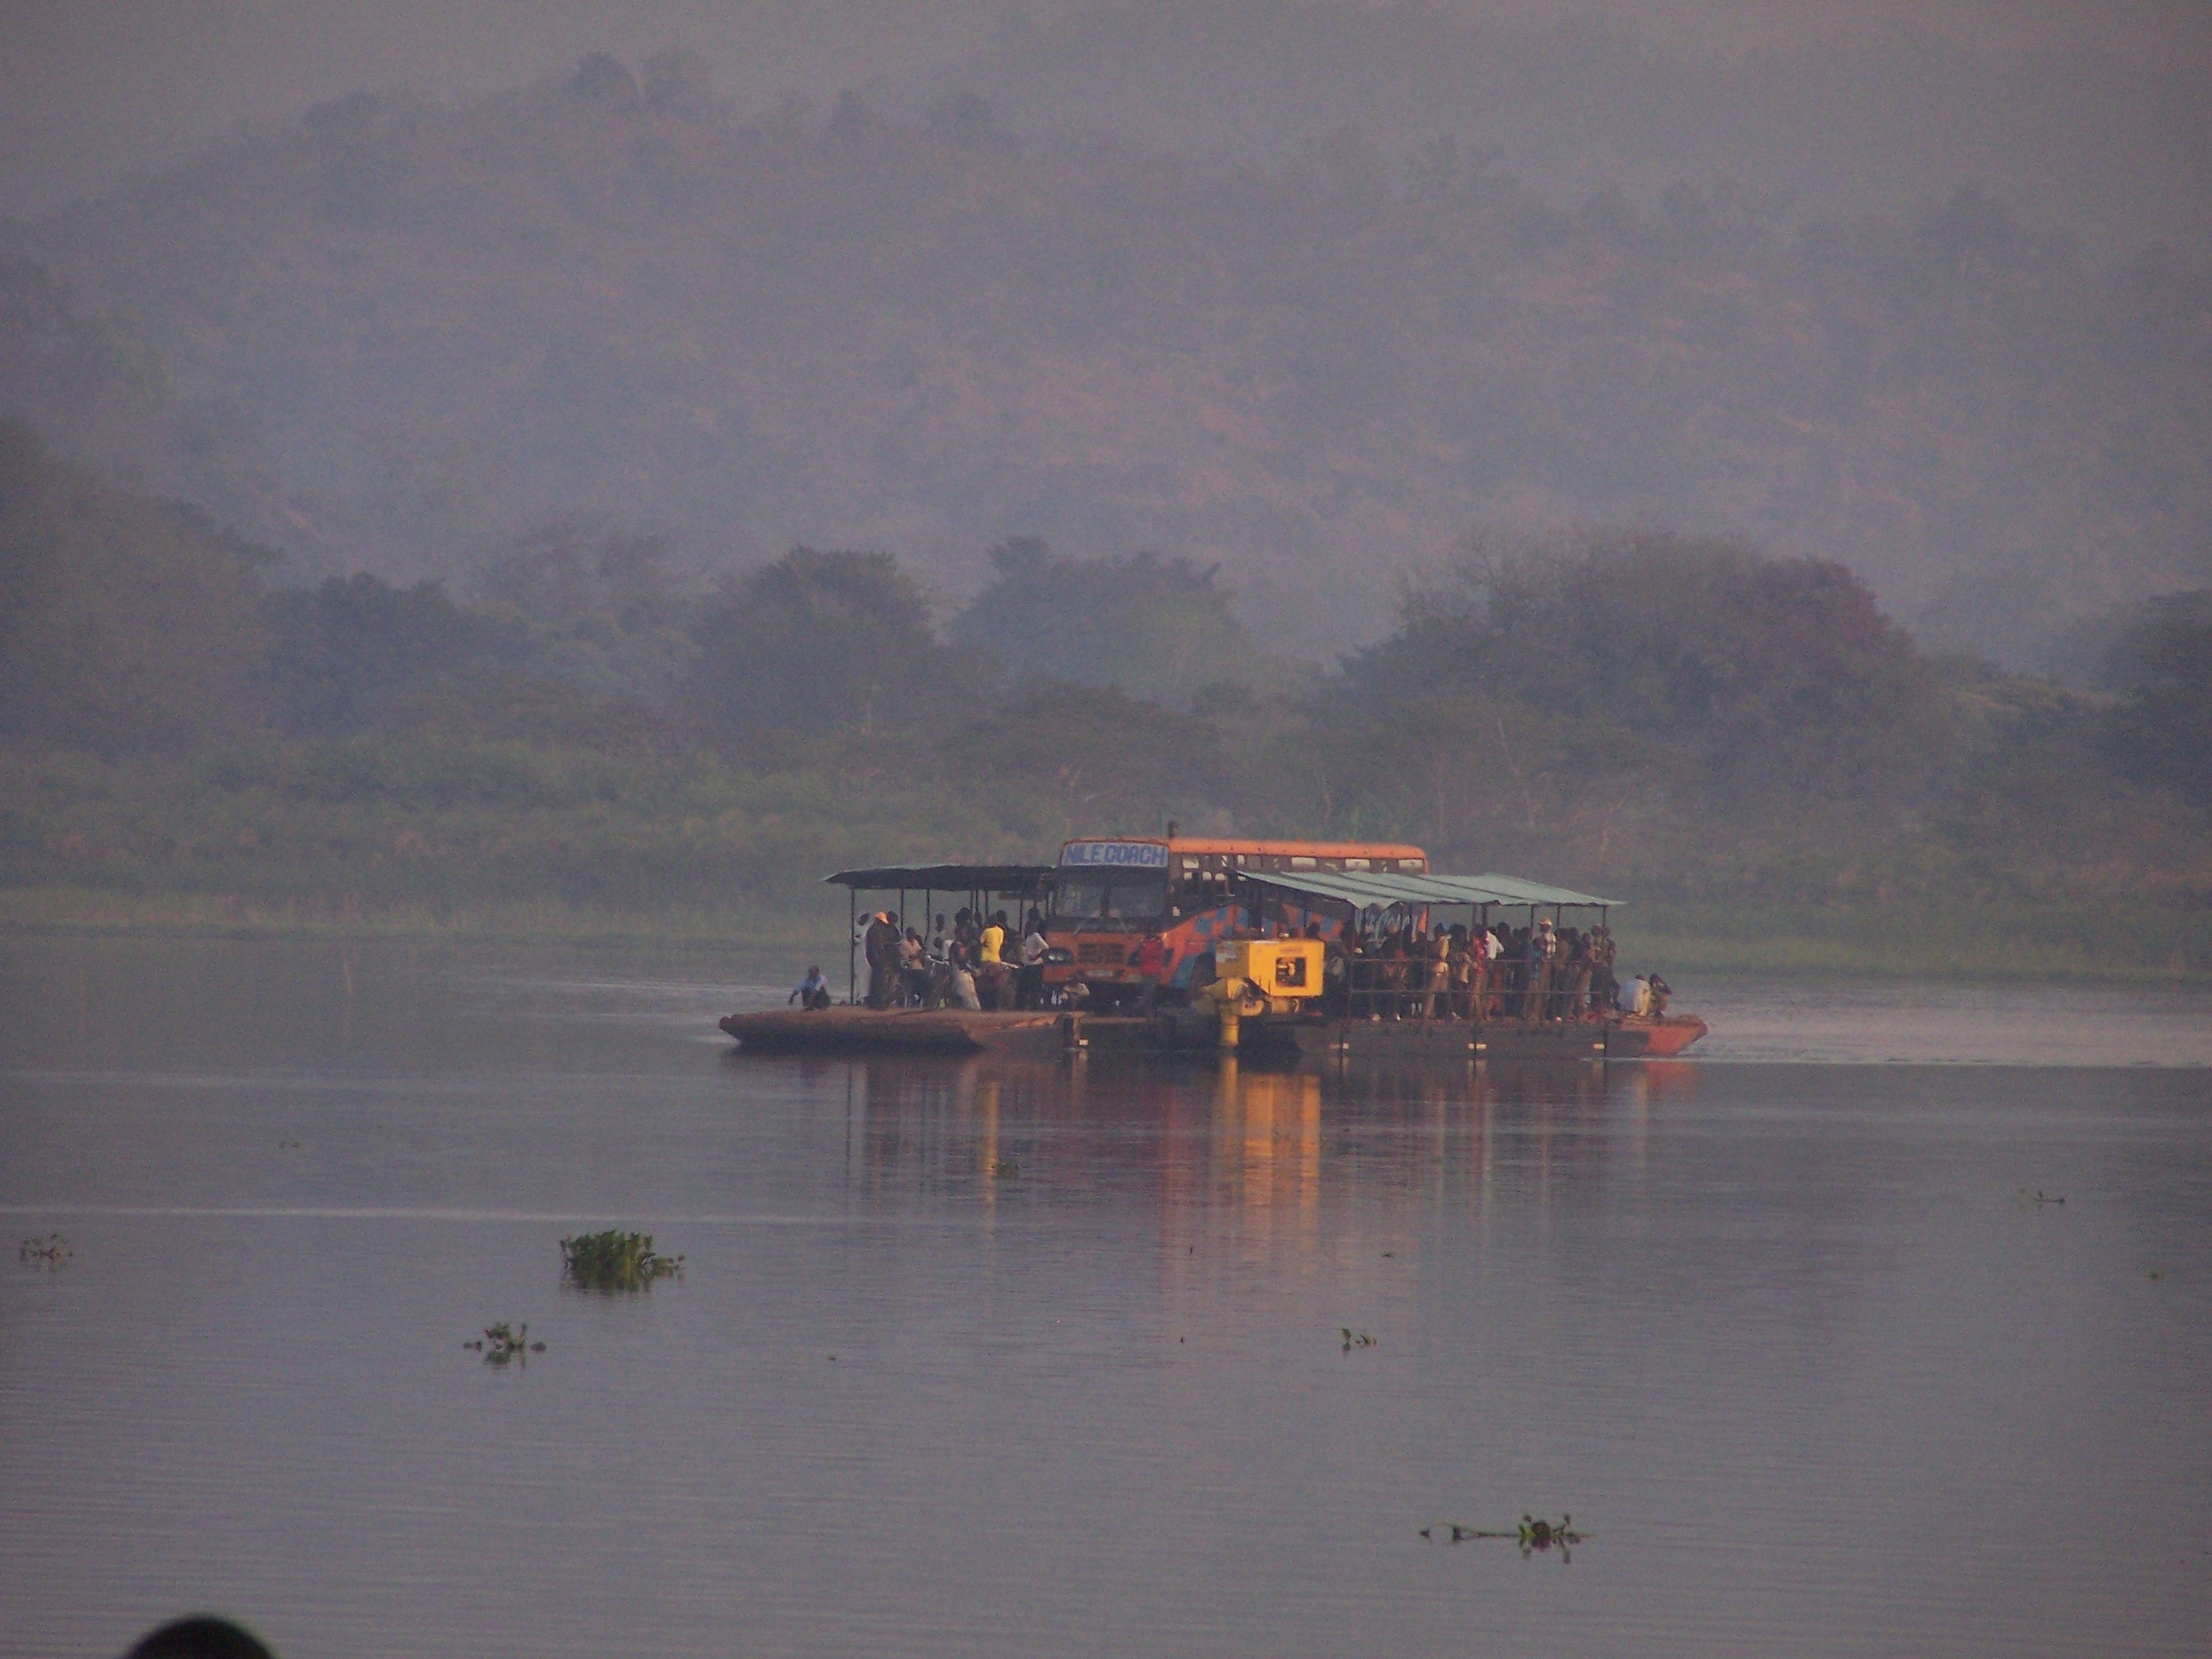 Ferry crossing the Nile, traveled by Evan Haglund in search of Alere 2 Refugee Camp